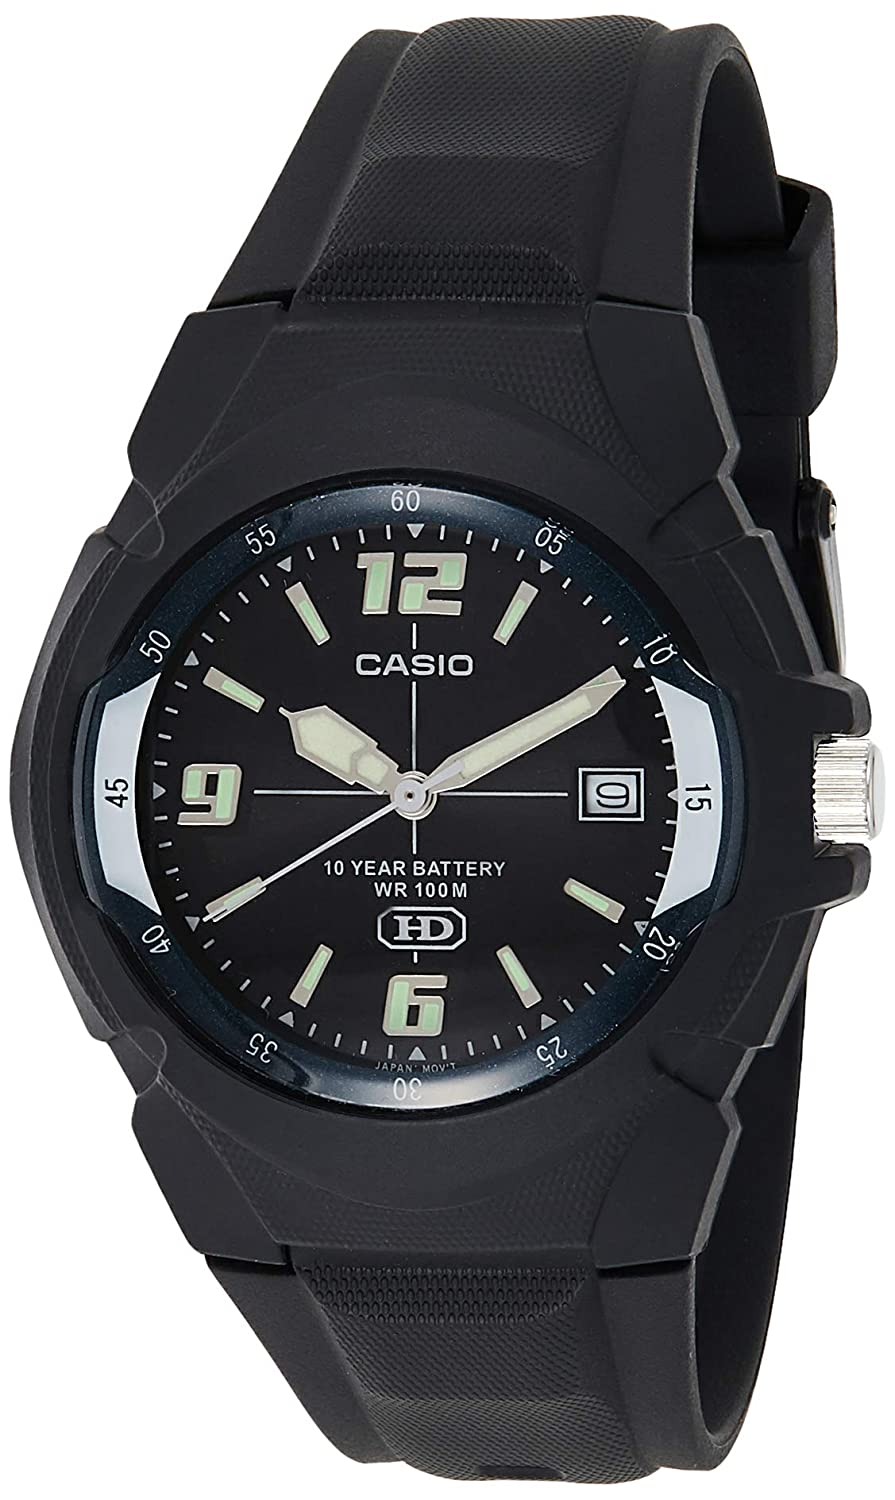 Casio Best Watches For Teenage Boys in India